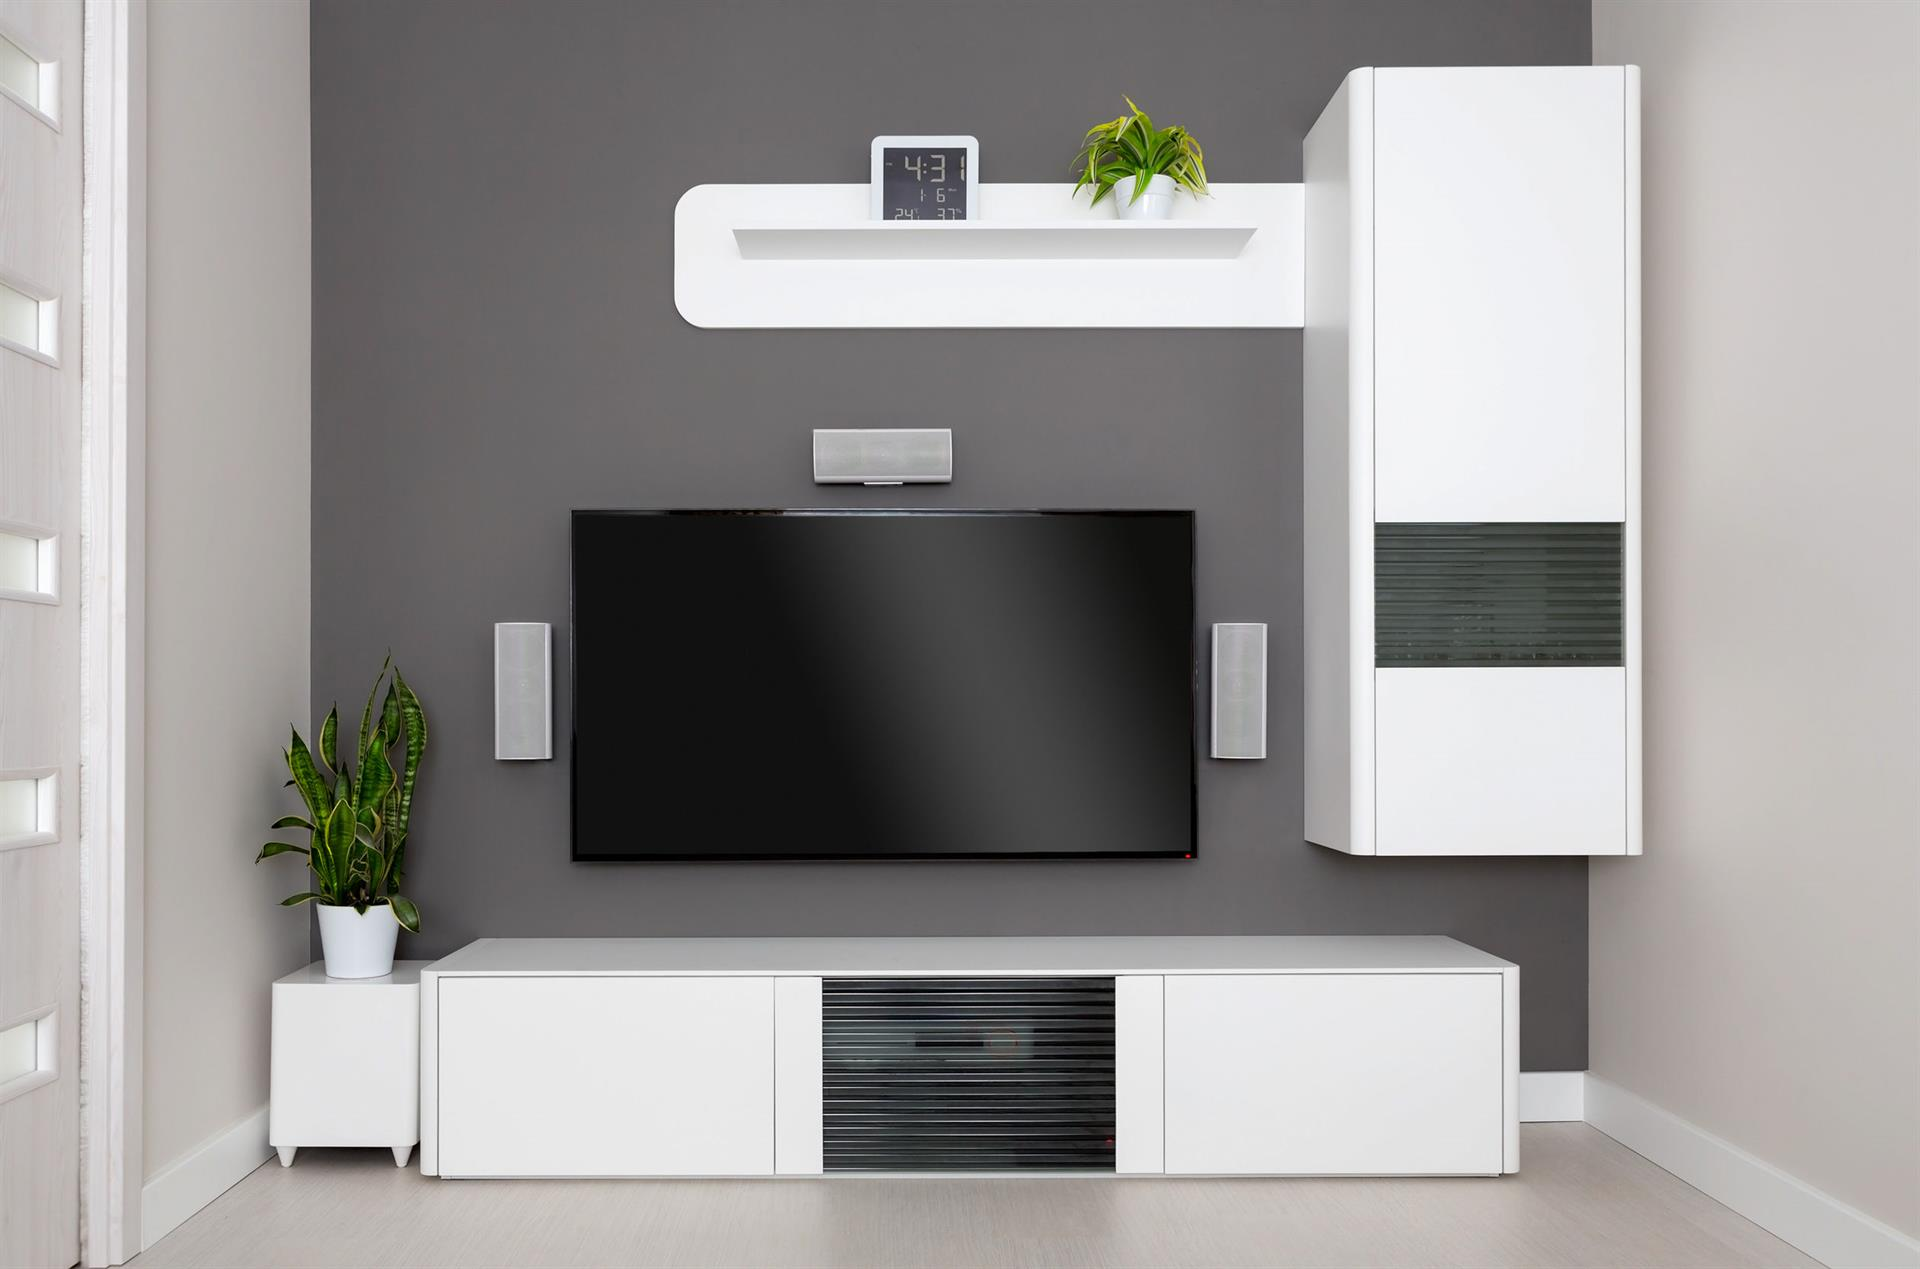 How Do You Mount Home Theater Speakers In Your Living Room